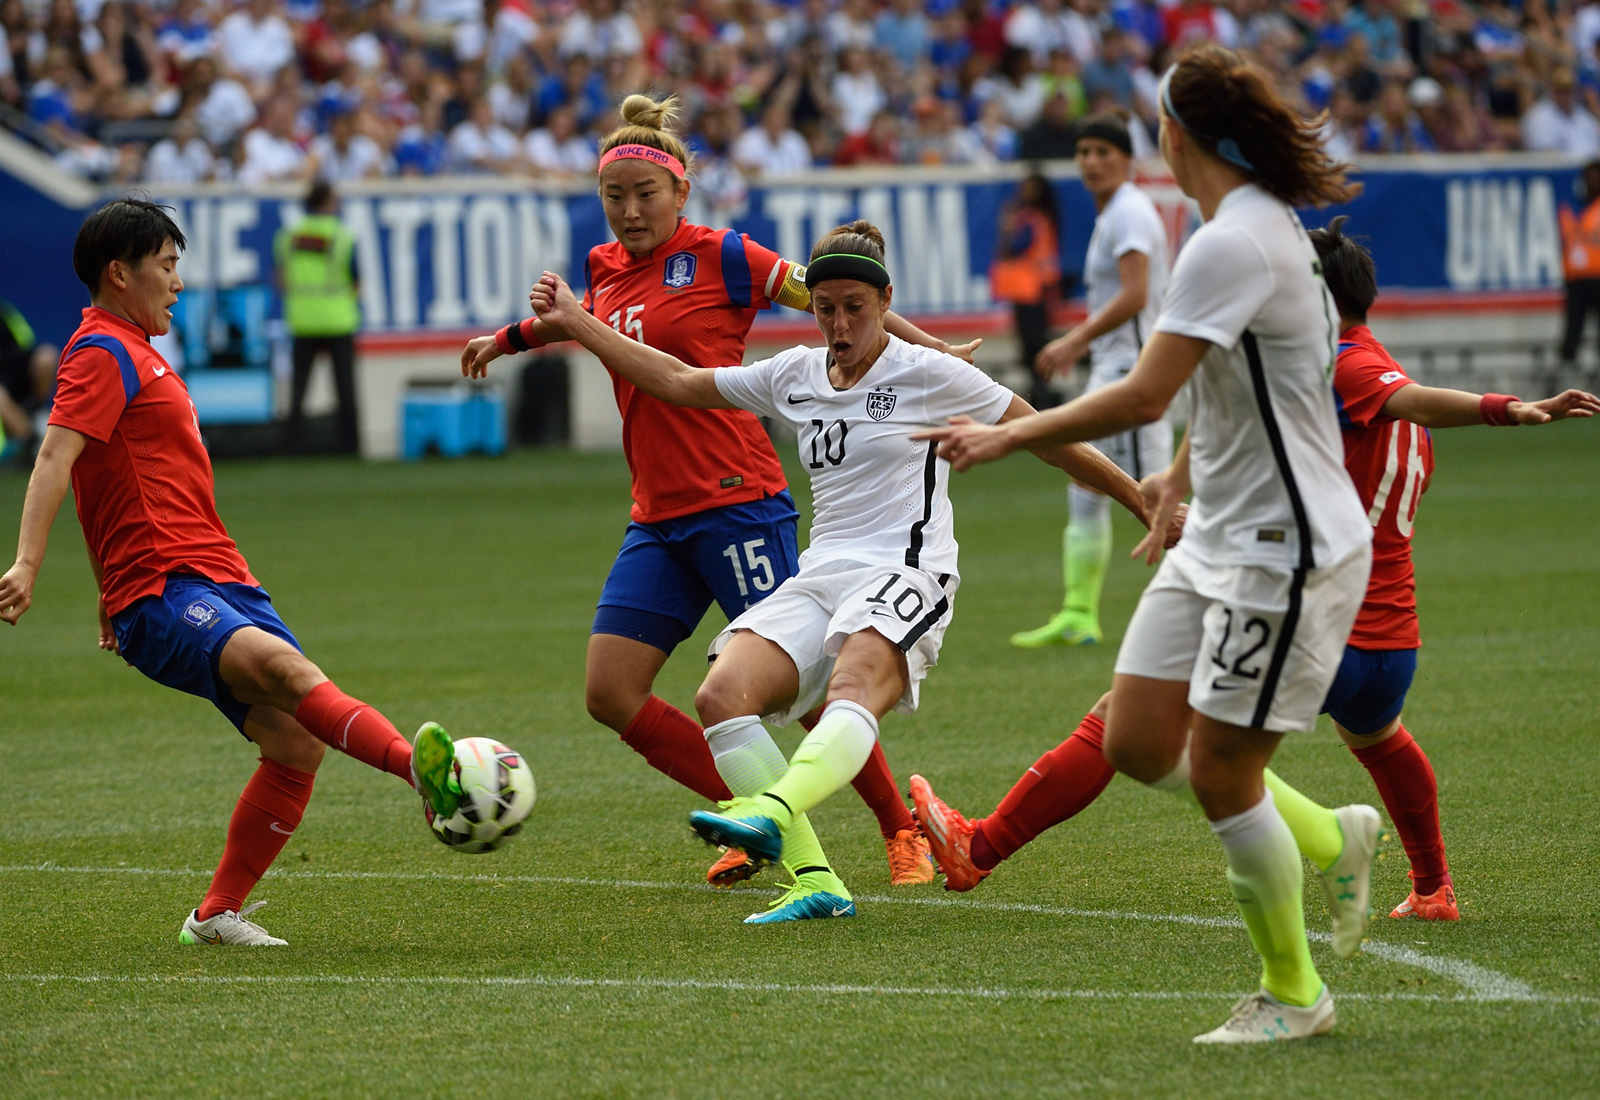 Carli Lloyd gets off a shot through traffic in the USA's final World Cup send-off friendly, a 0-0 draw against South Korea at Red Bull Arena.